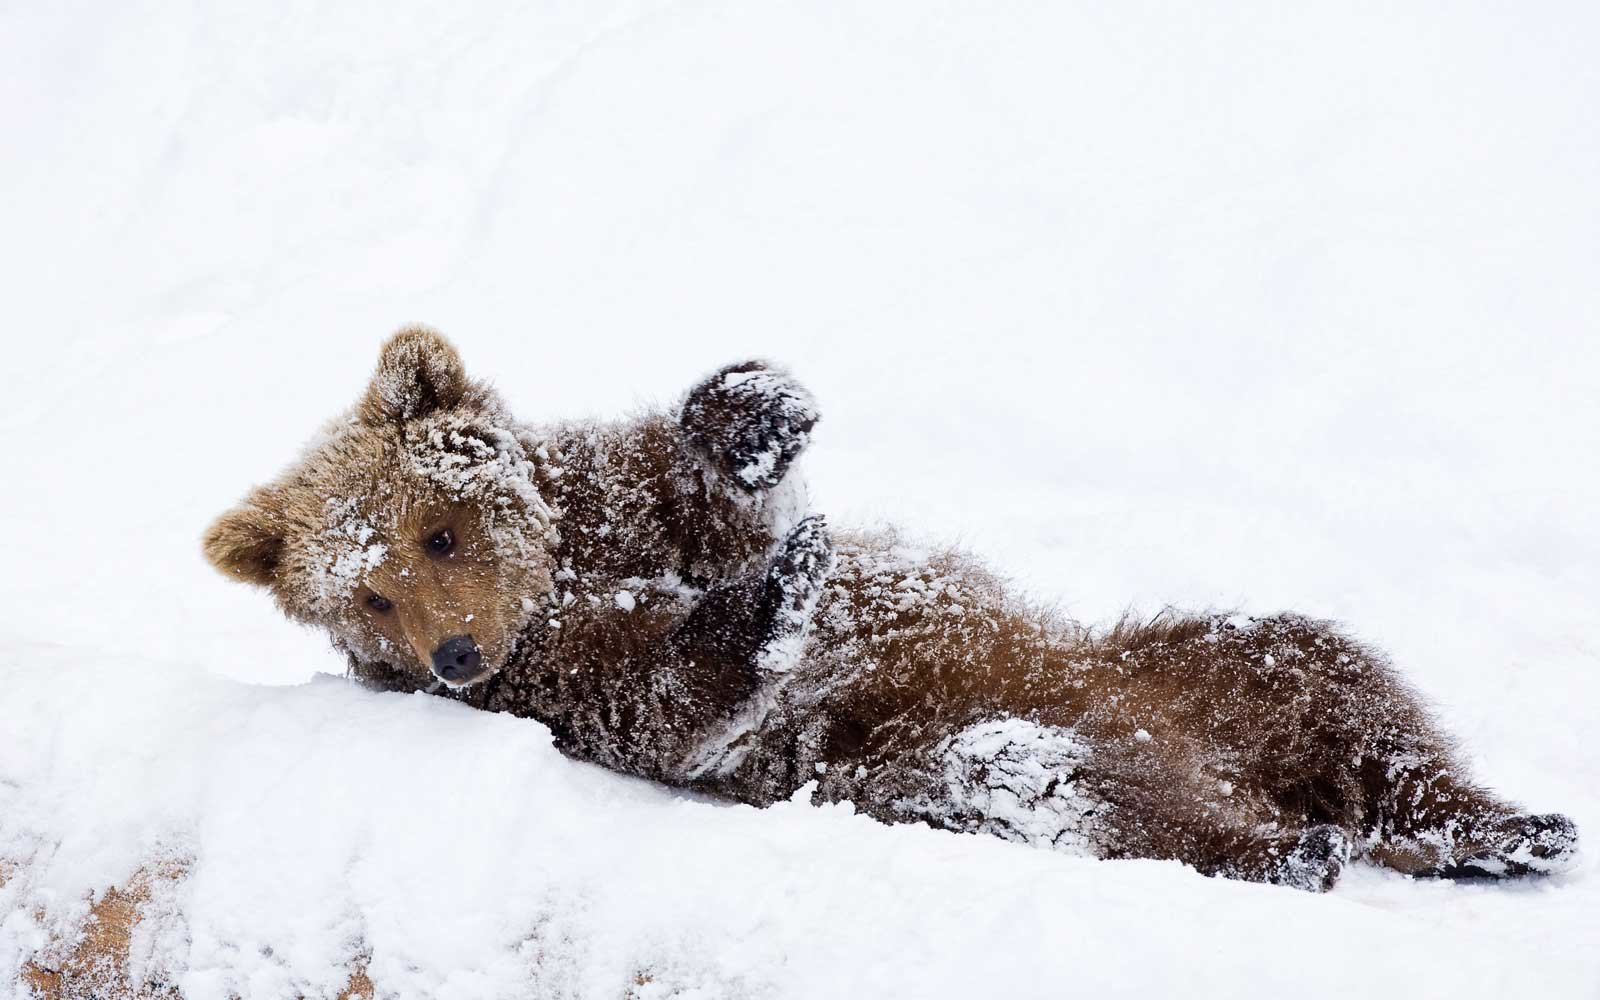 The video shows a bear cub and its mother climbing up a snowy slope.